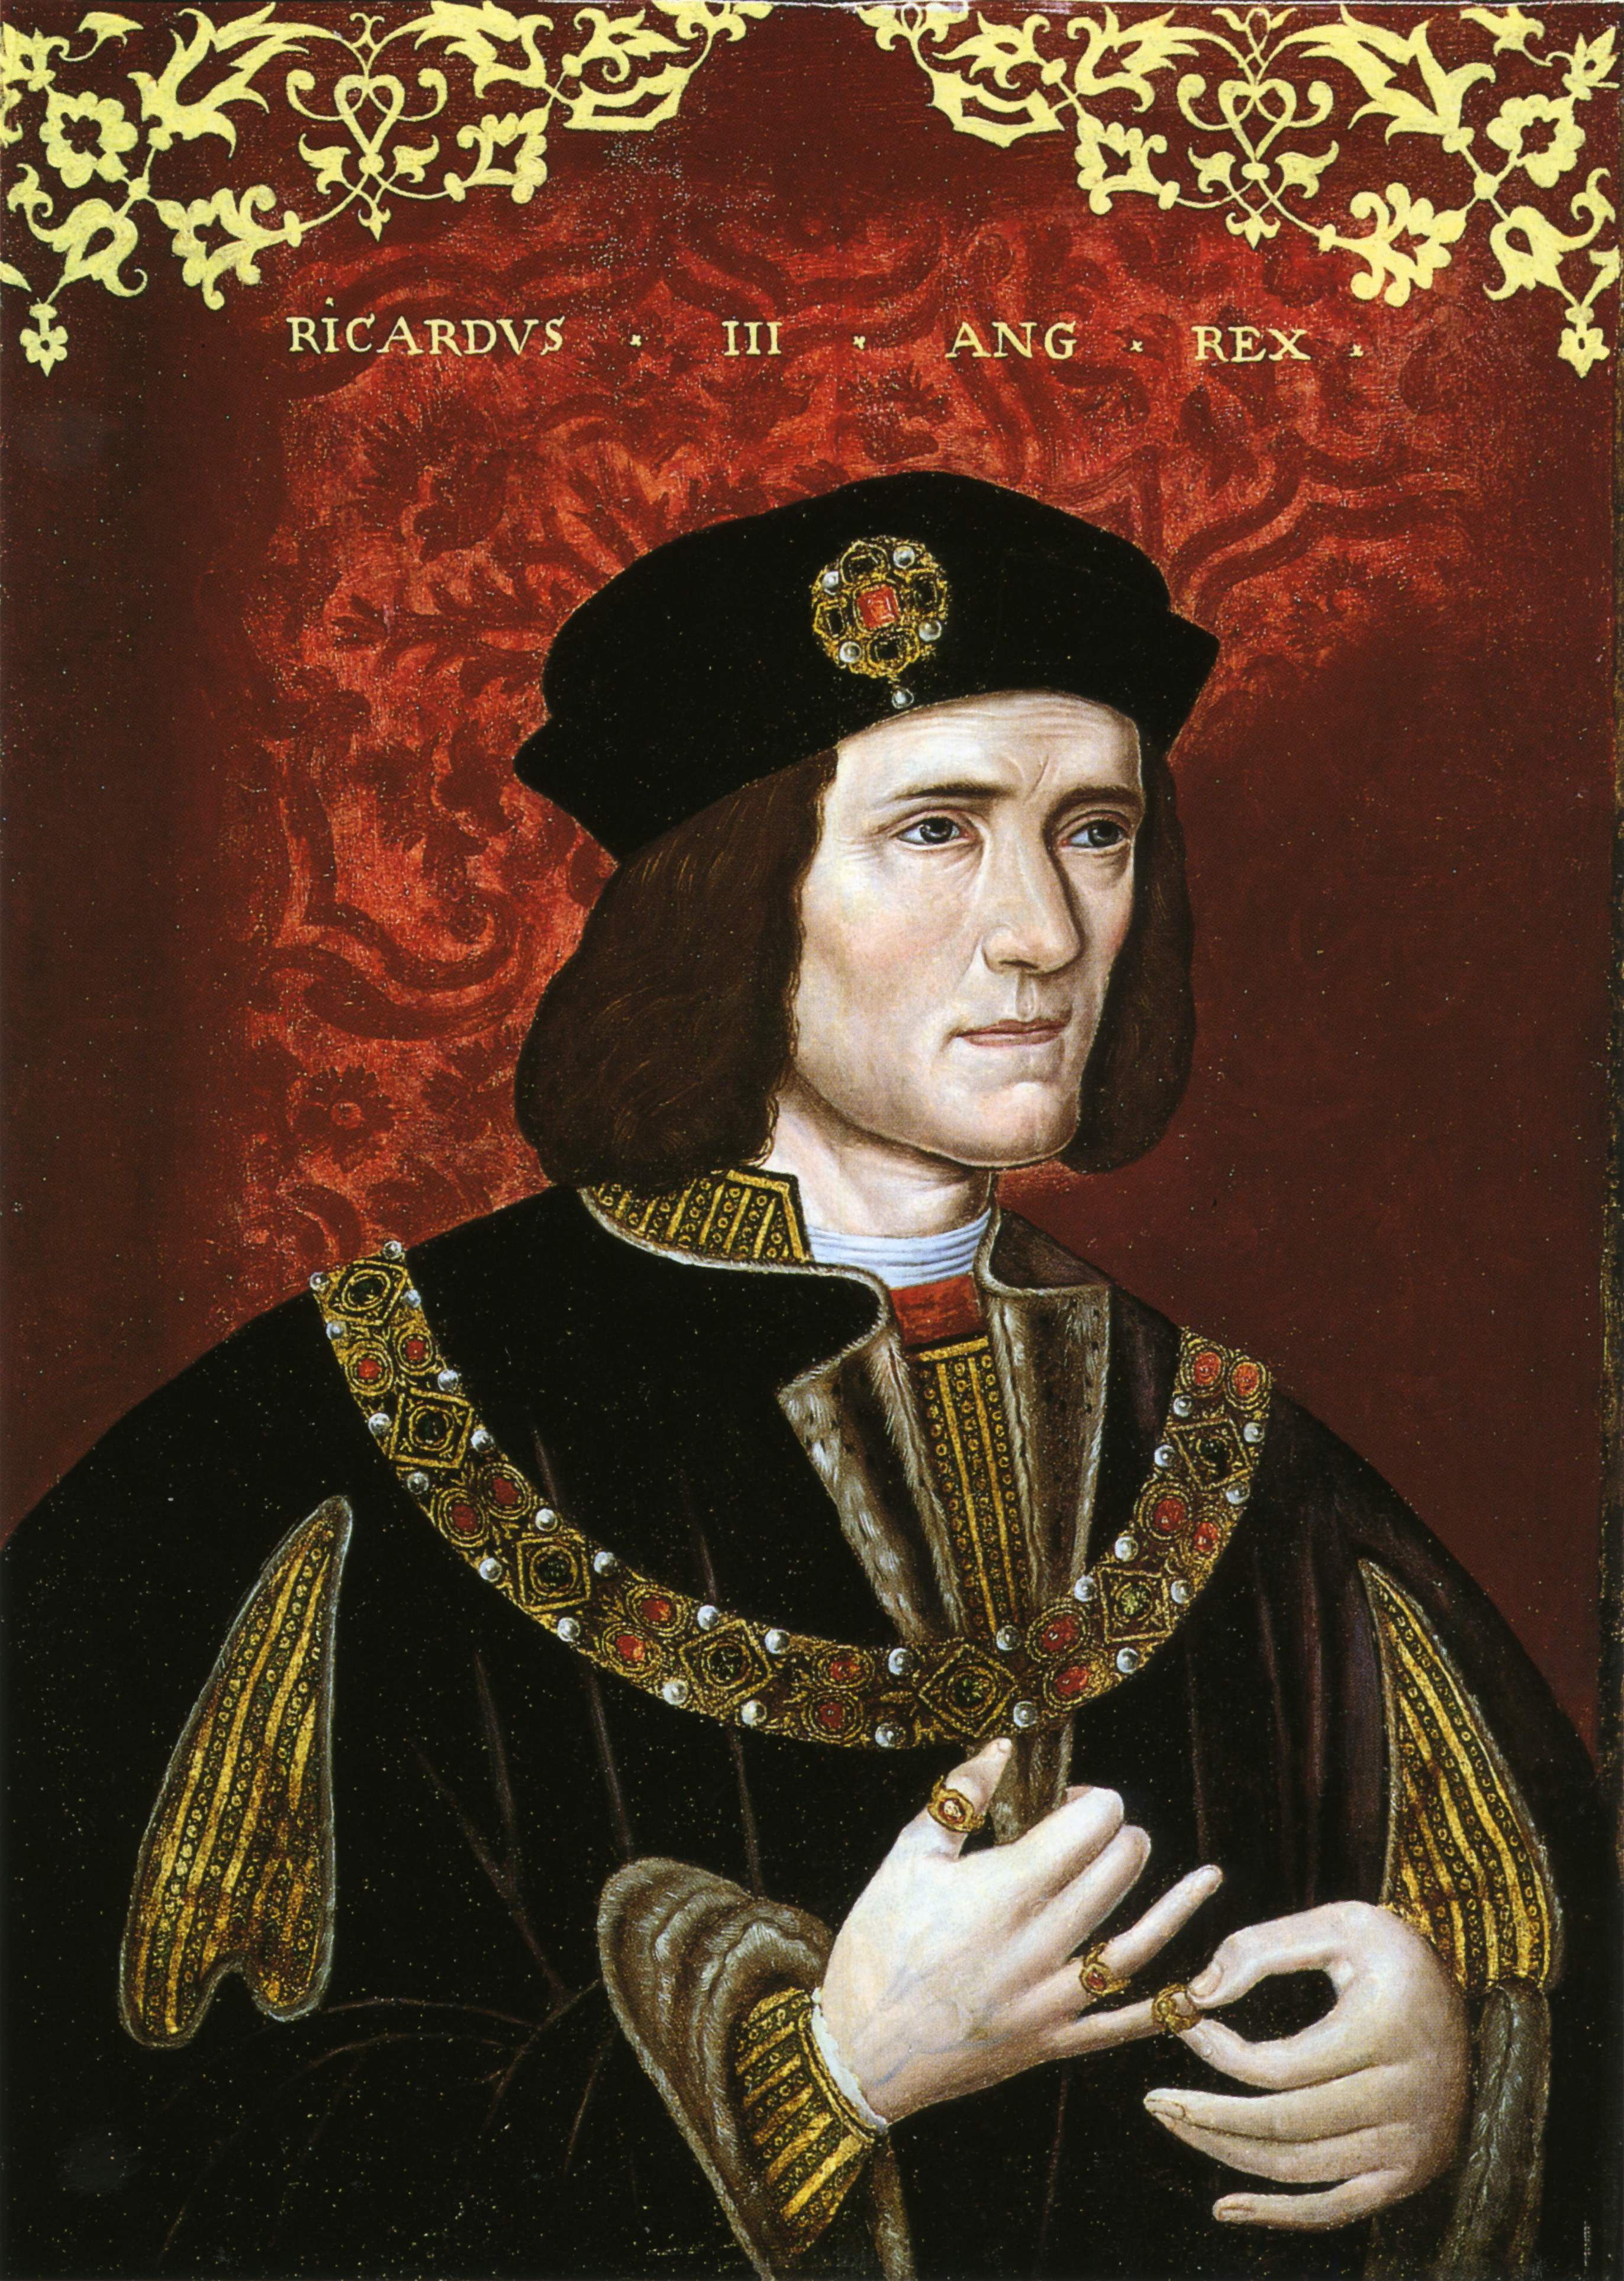 an introduction to the history and life of richard iii Richard iii is a historical play by william shakespeare believed to have been written a personification of the machiavellian view of history as power politics lull does not make the comparison between richmond and richard as haeffner does, but between richard and the women in his life.